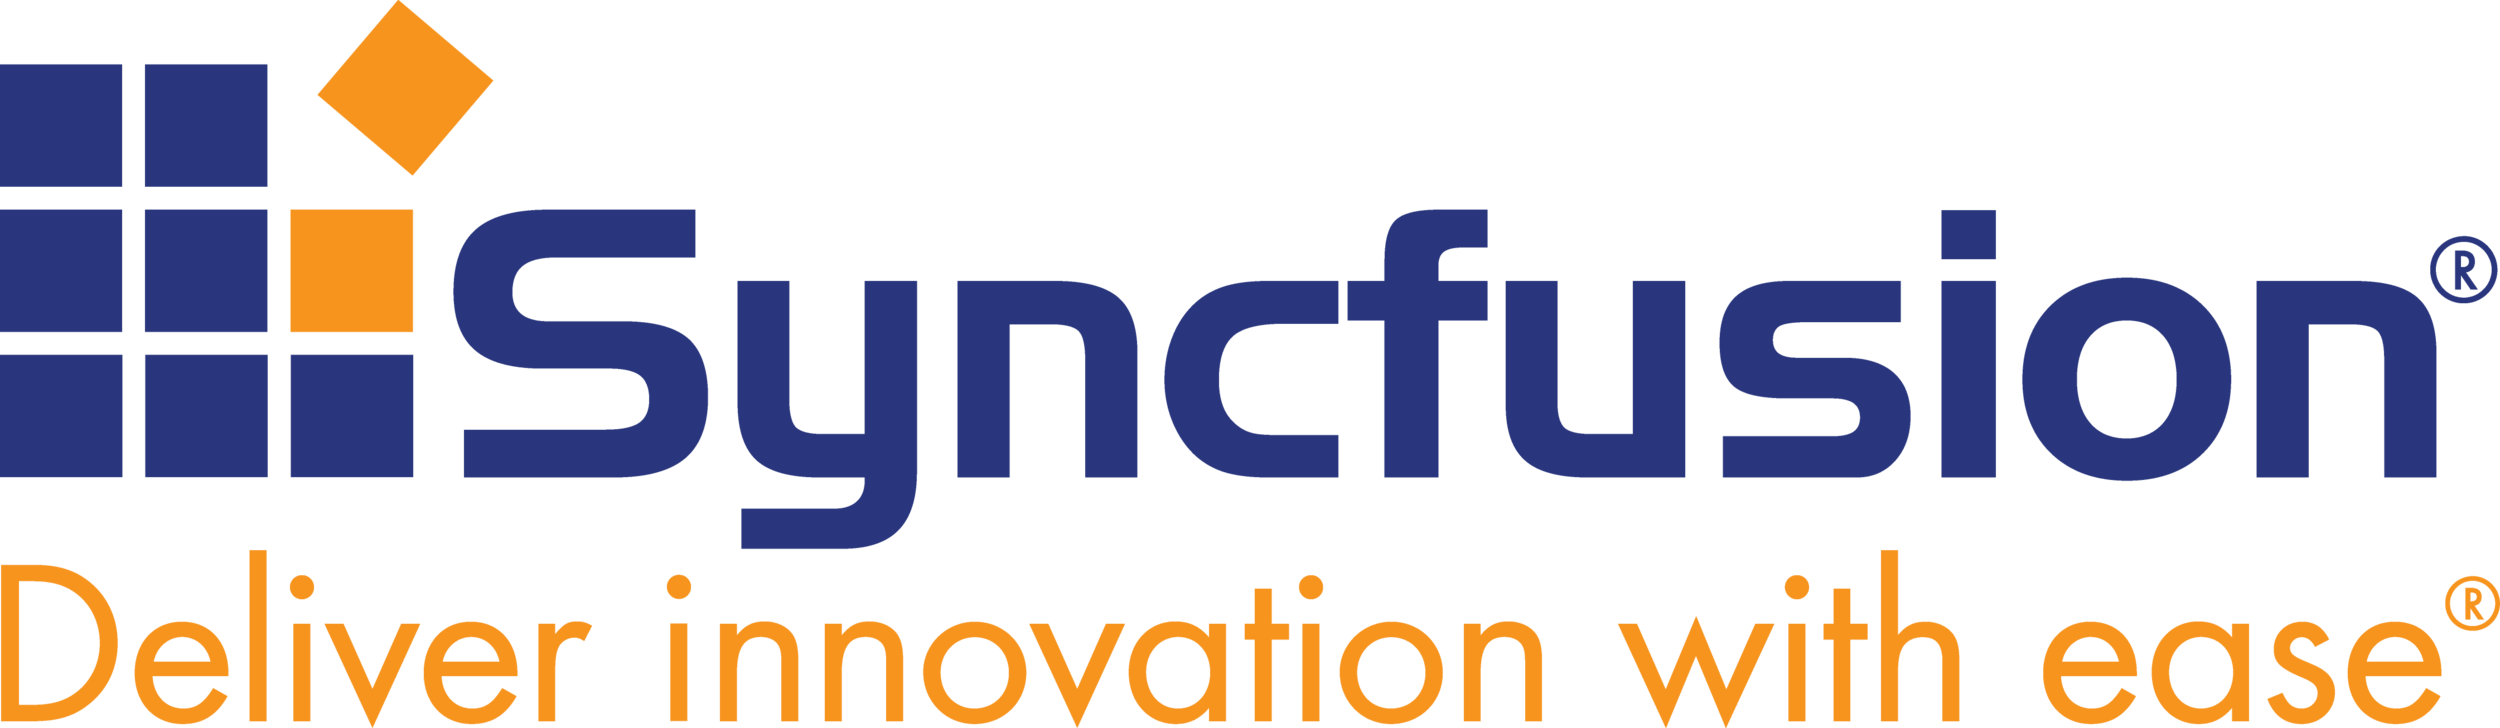 syncfusion-logo.png